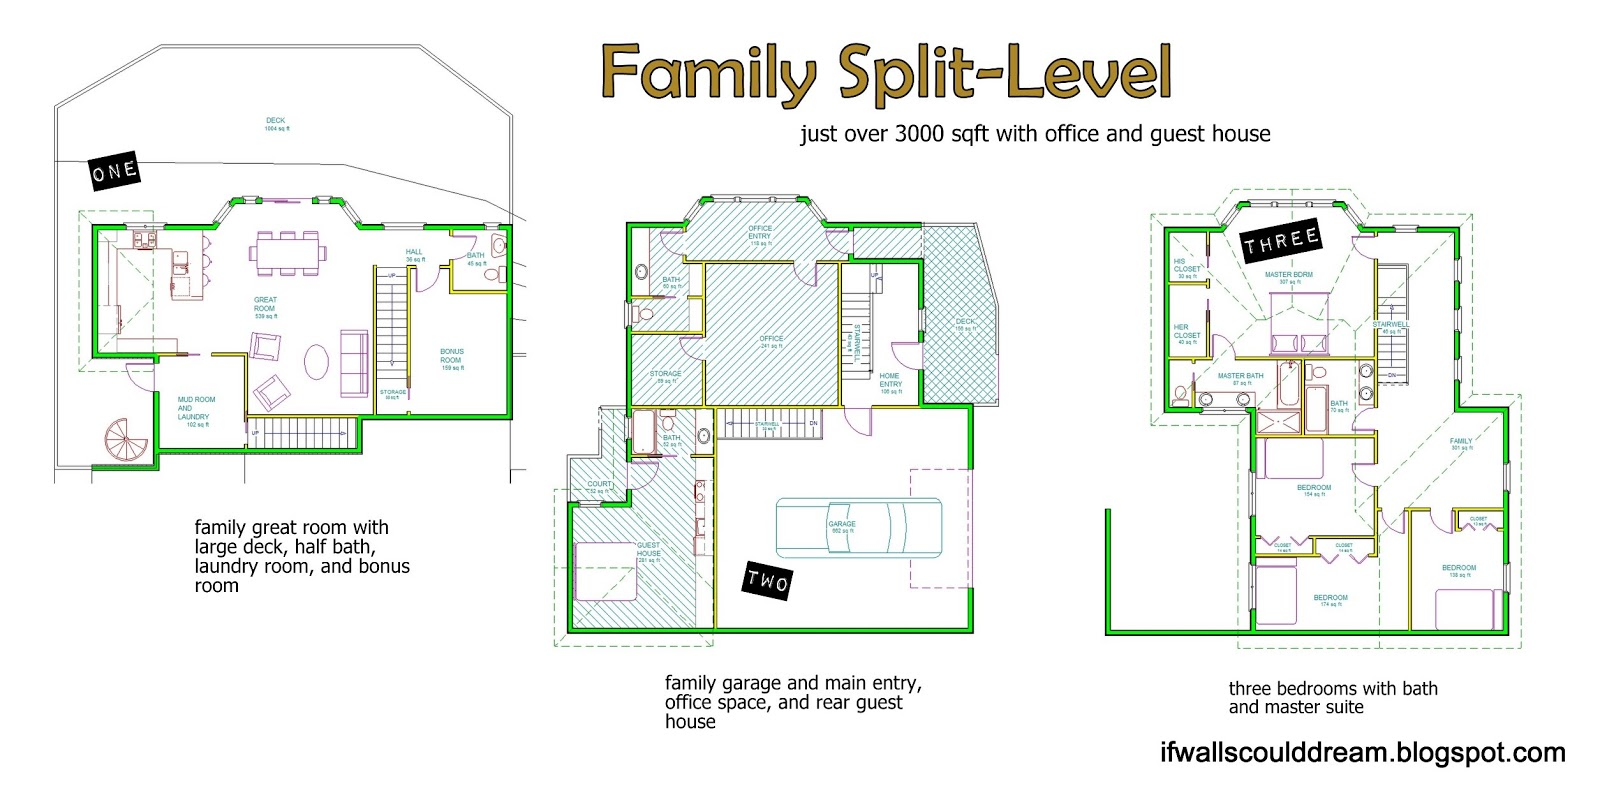 If walls could dream family split level Split level house plans